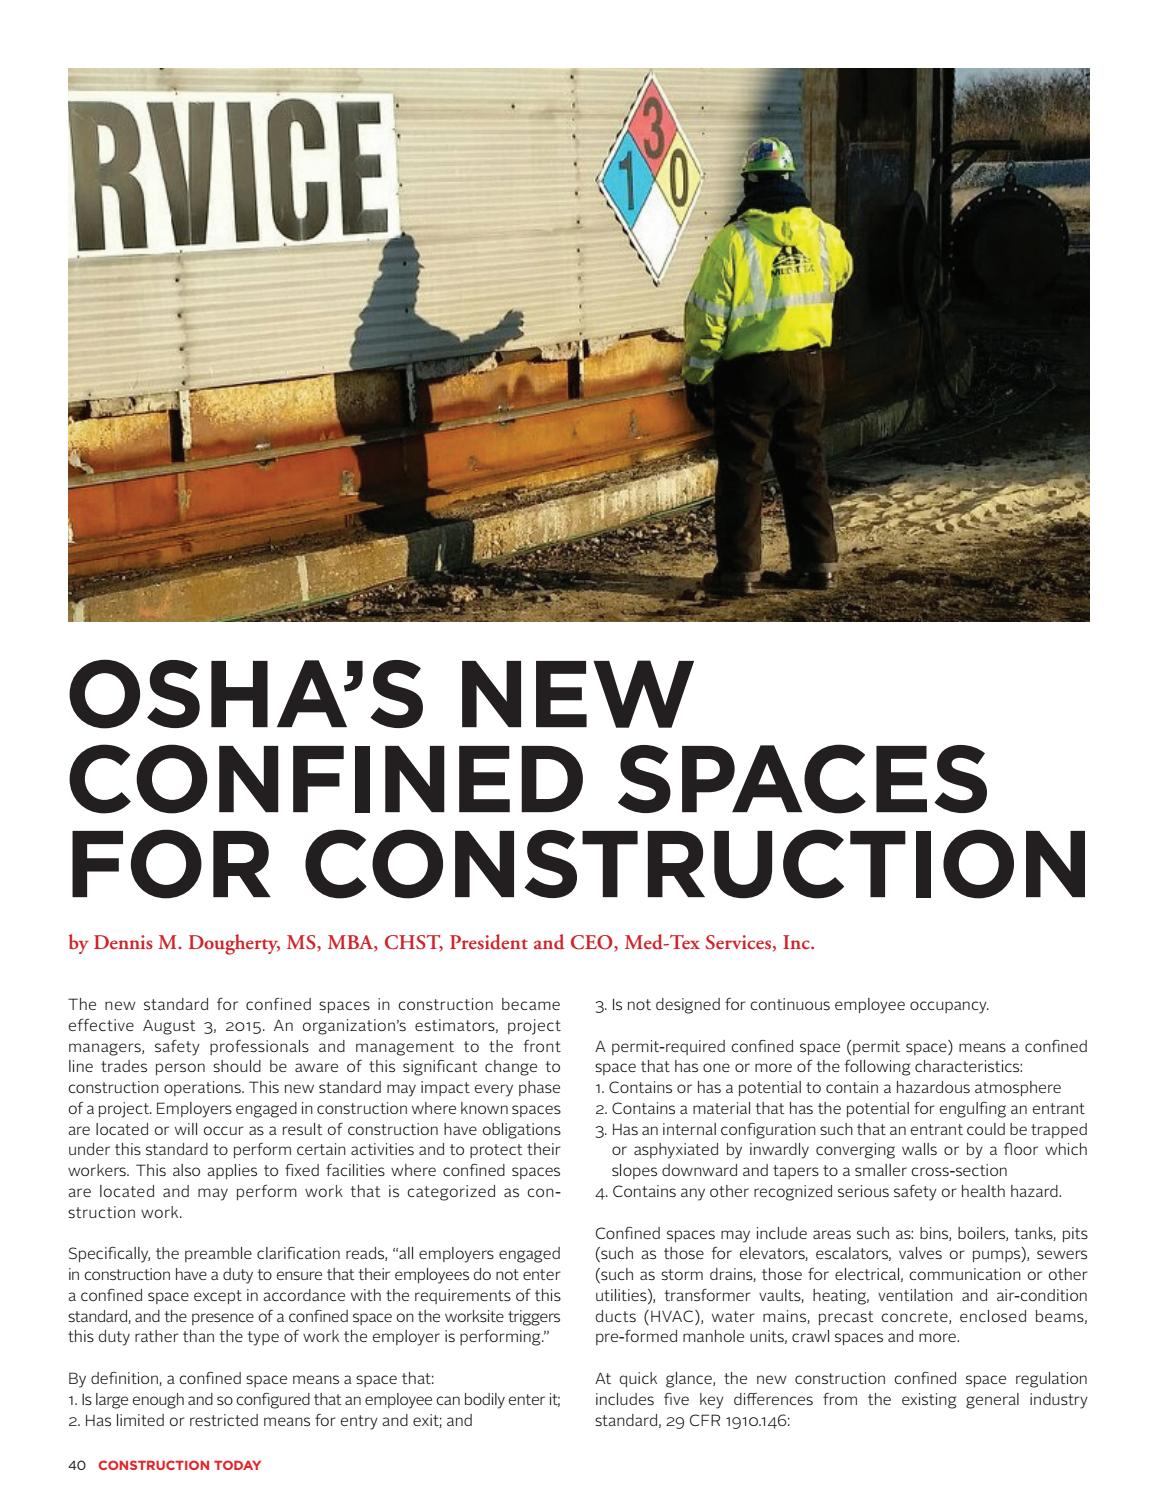 Construction Today - Issue 2 by General Building Contractors